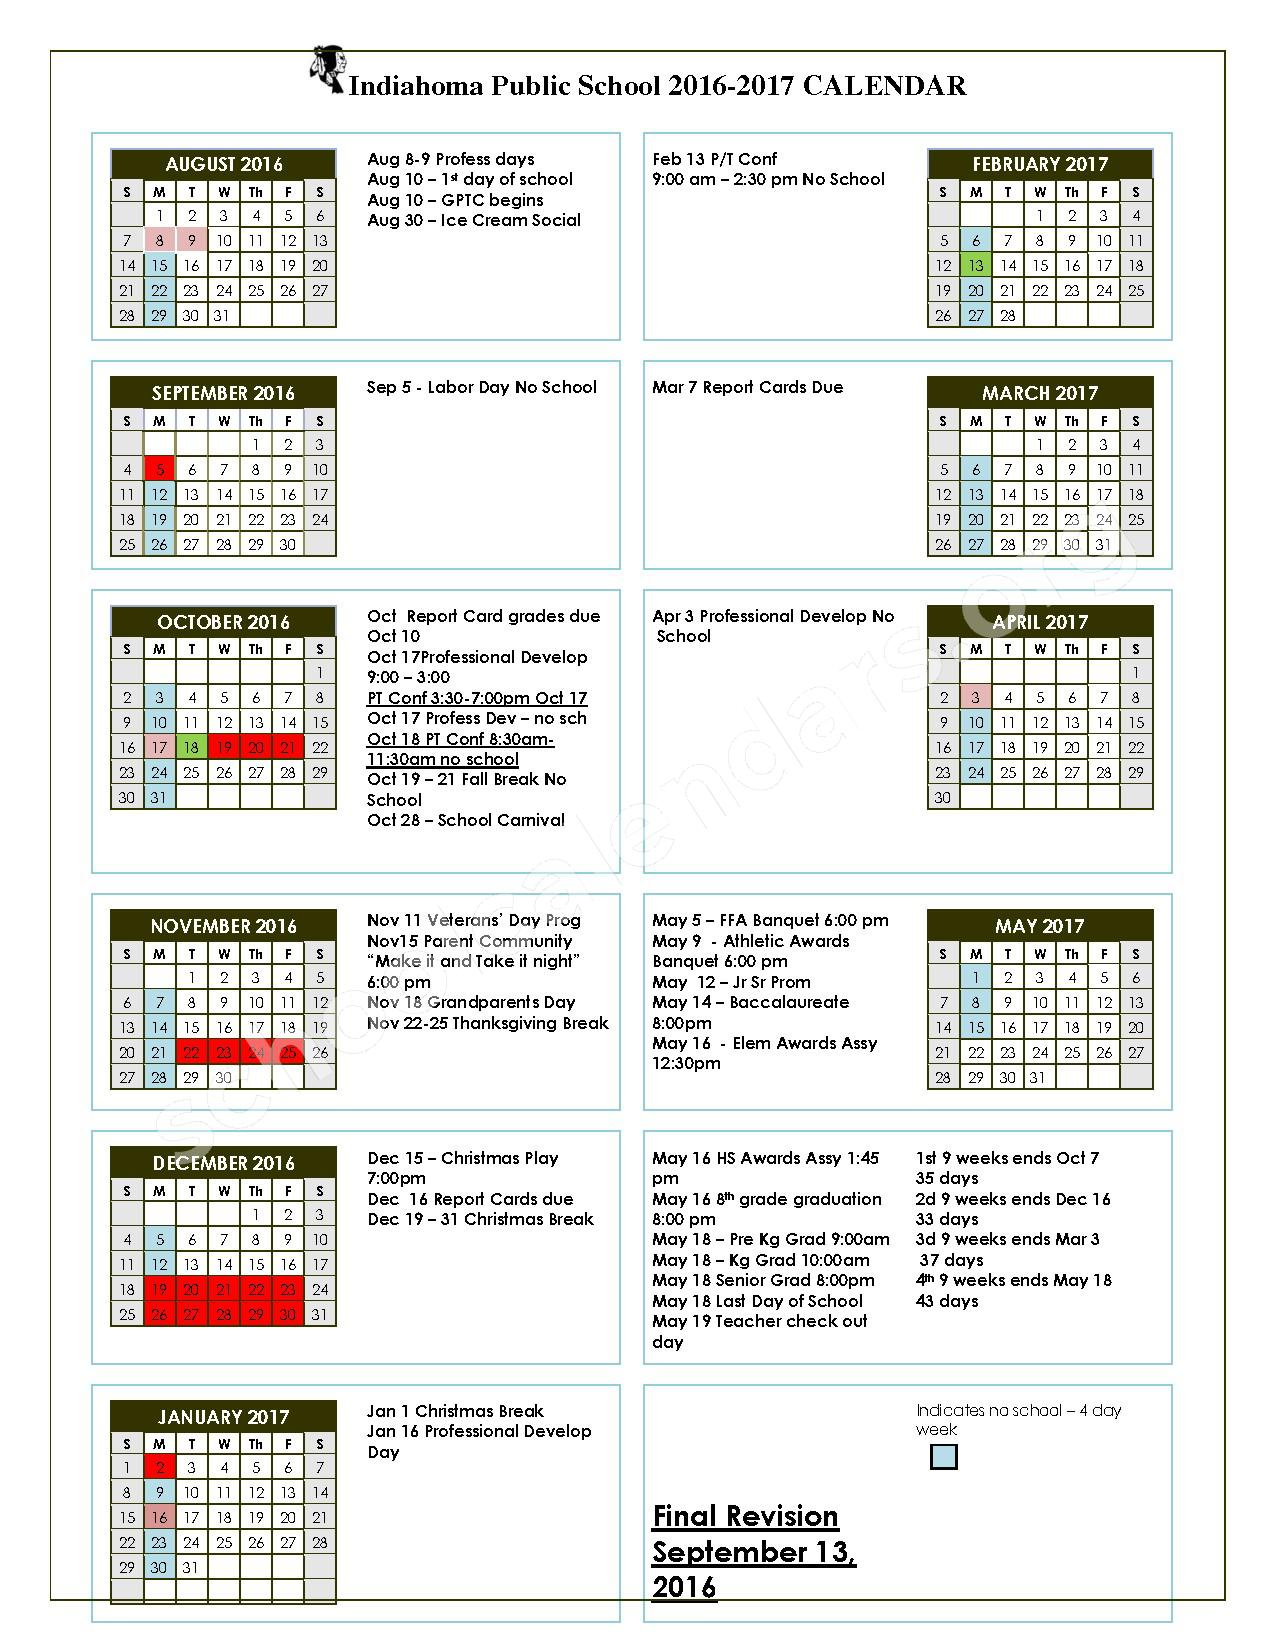 Calendar 2016 - 2017 four day week revised September 2016 – Indiahoma Public Schools – page 1